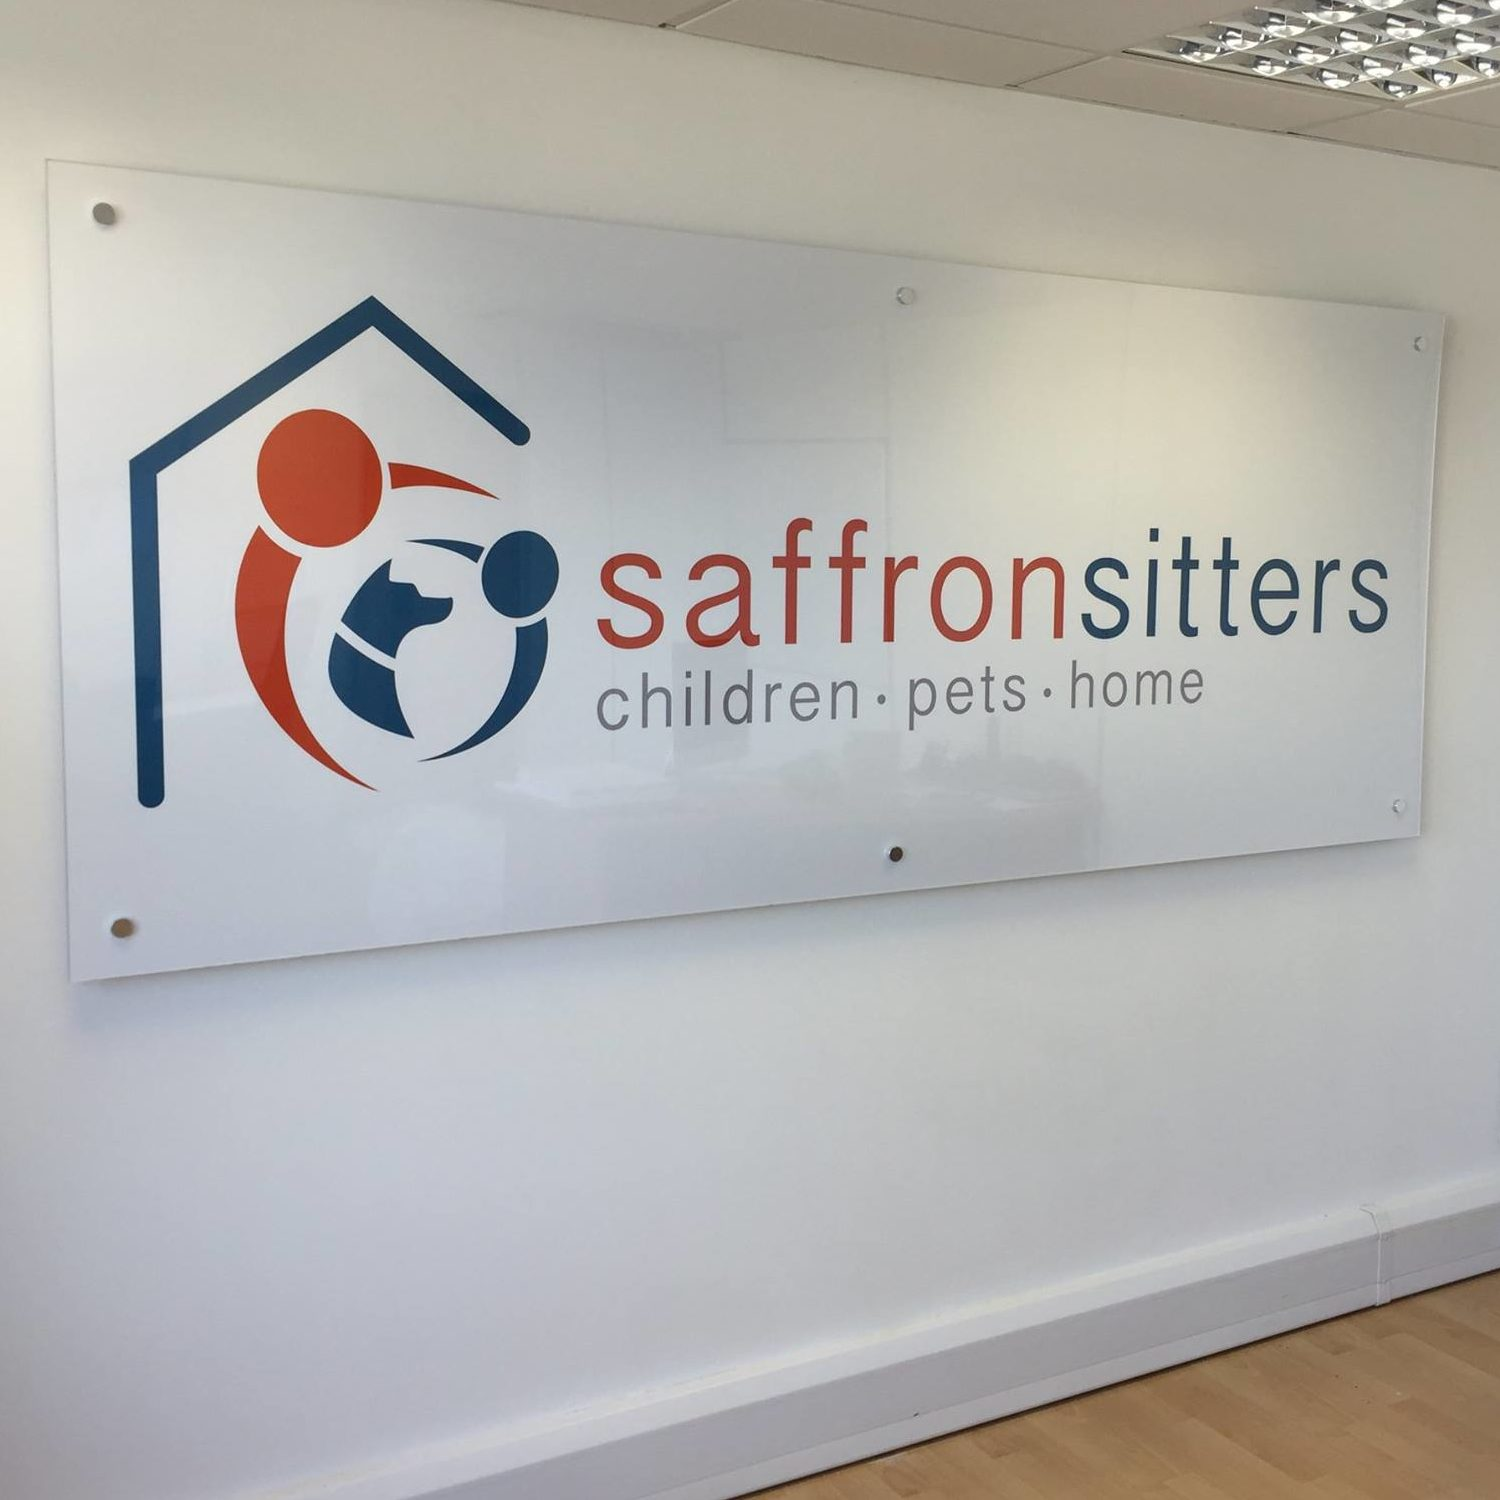 Acrylic Indoor Signage in Bury St Edmunds, Suffolk